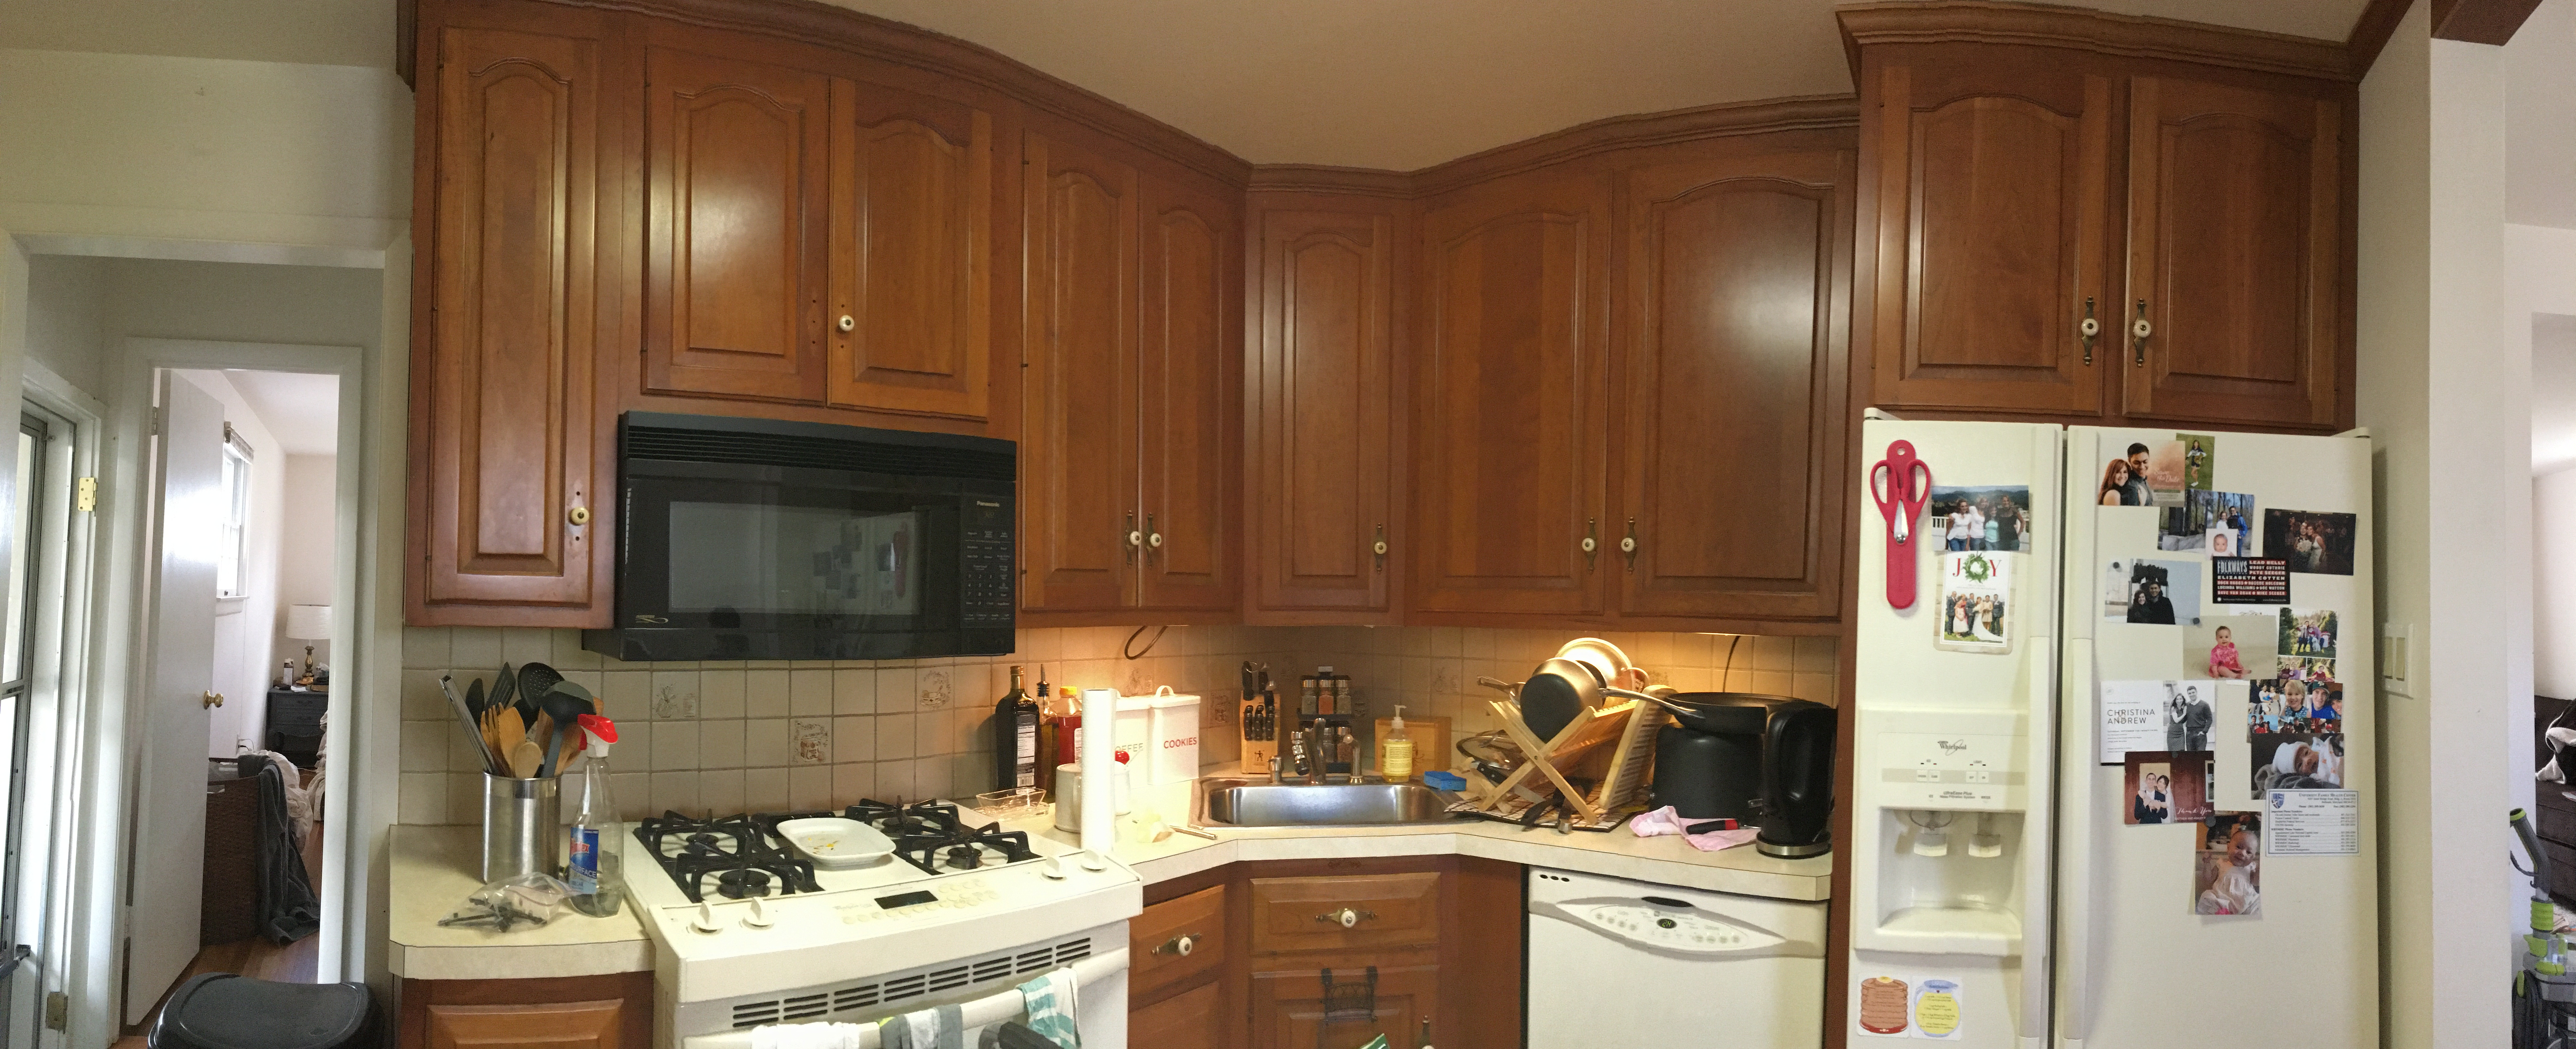 It Was A Usable Kitchen, We Just Wanted To Brighten It Up! What We Decided  To Do Was Paint The Cabinets And Walls, Get New Hardware, Knock Down The  Upper ...